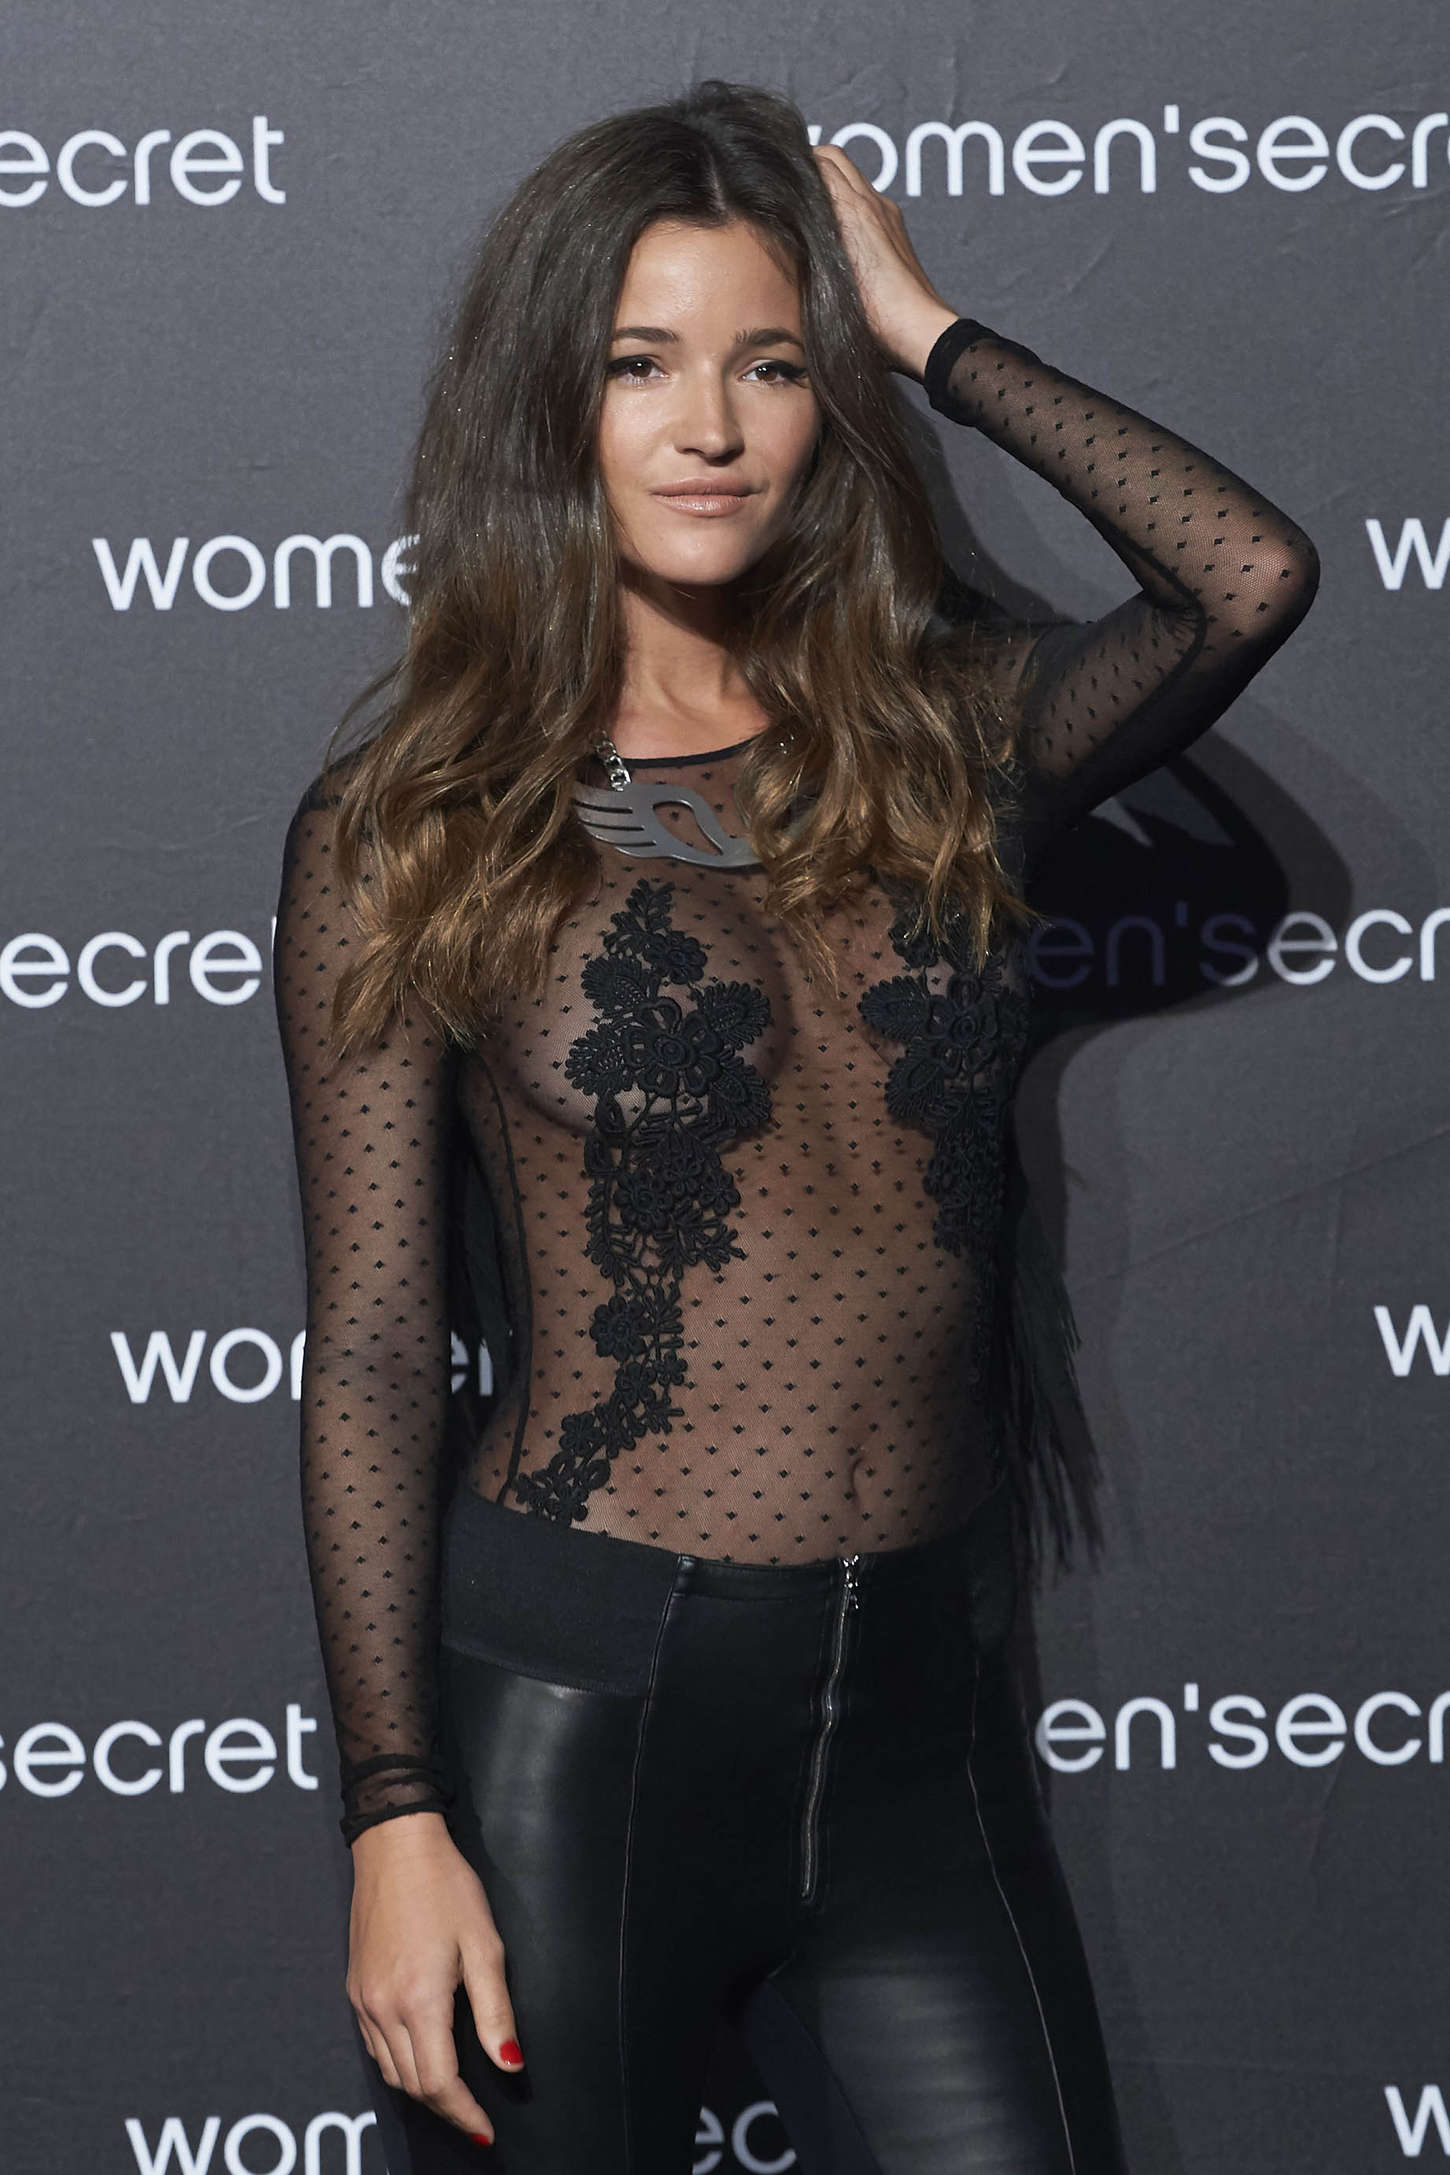 Malena Costa  WomenSecret Photocall in Madrid  GotCeleb